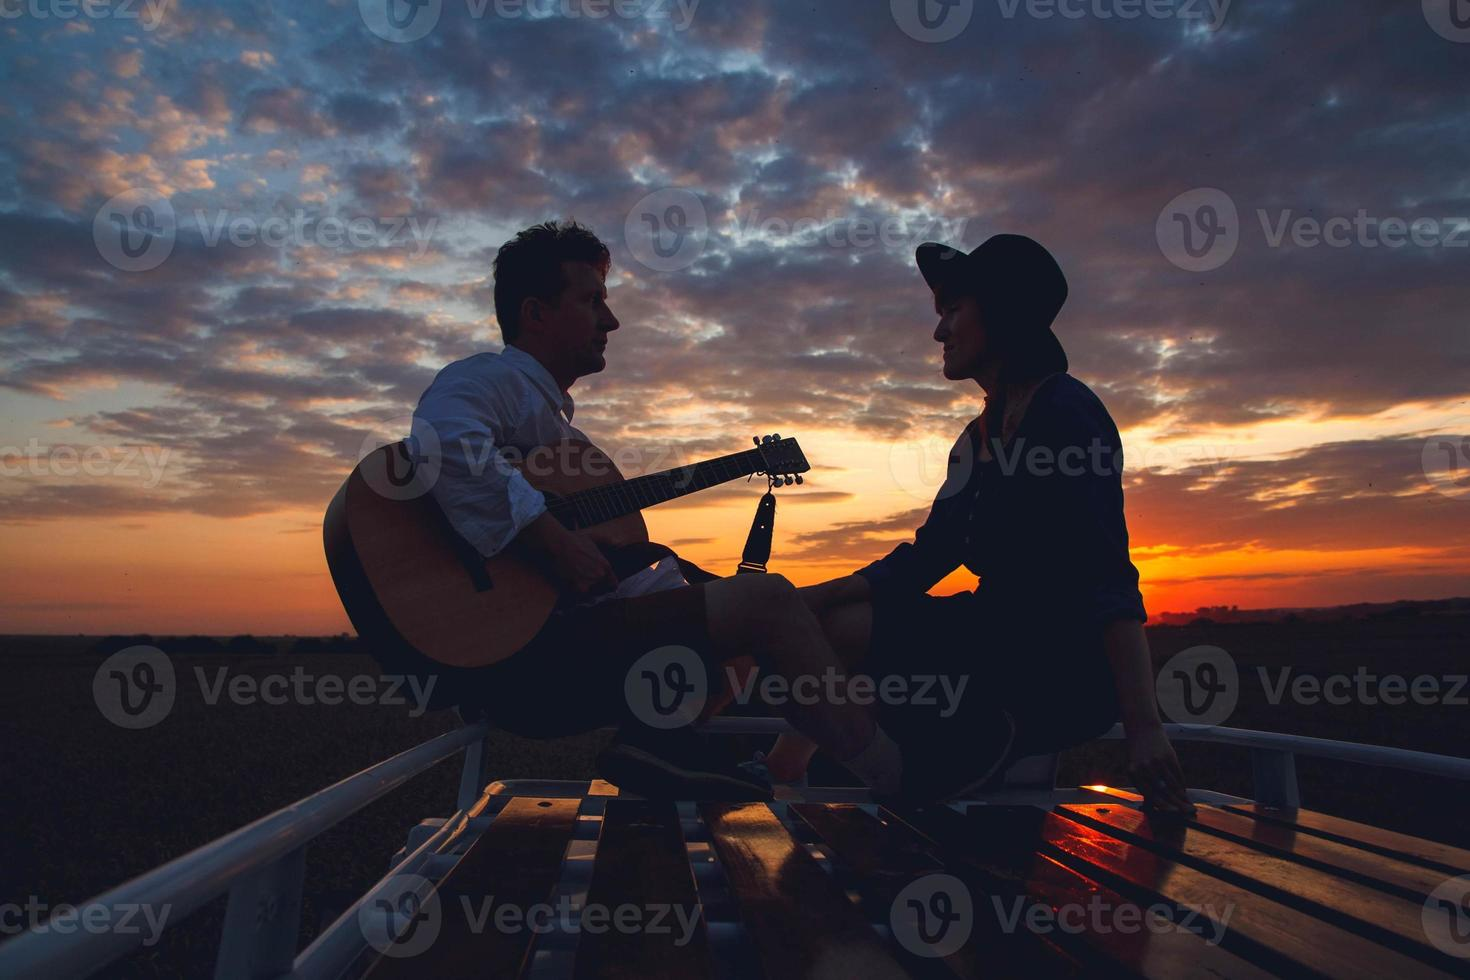 Silhouette of man with guitar and woman on roof of a car on sunset photo